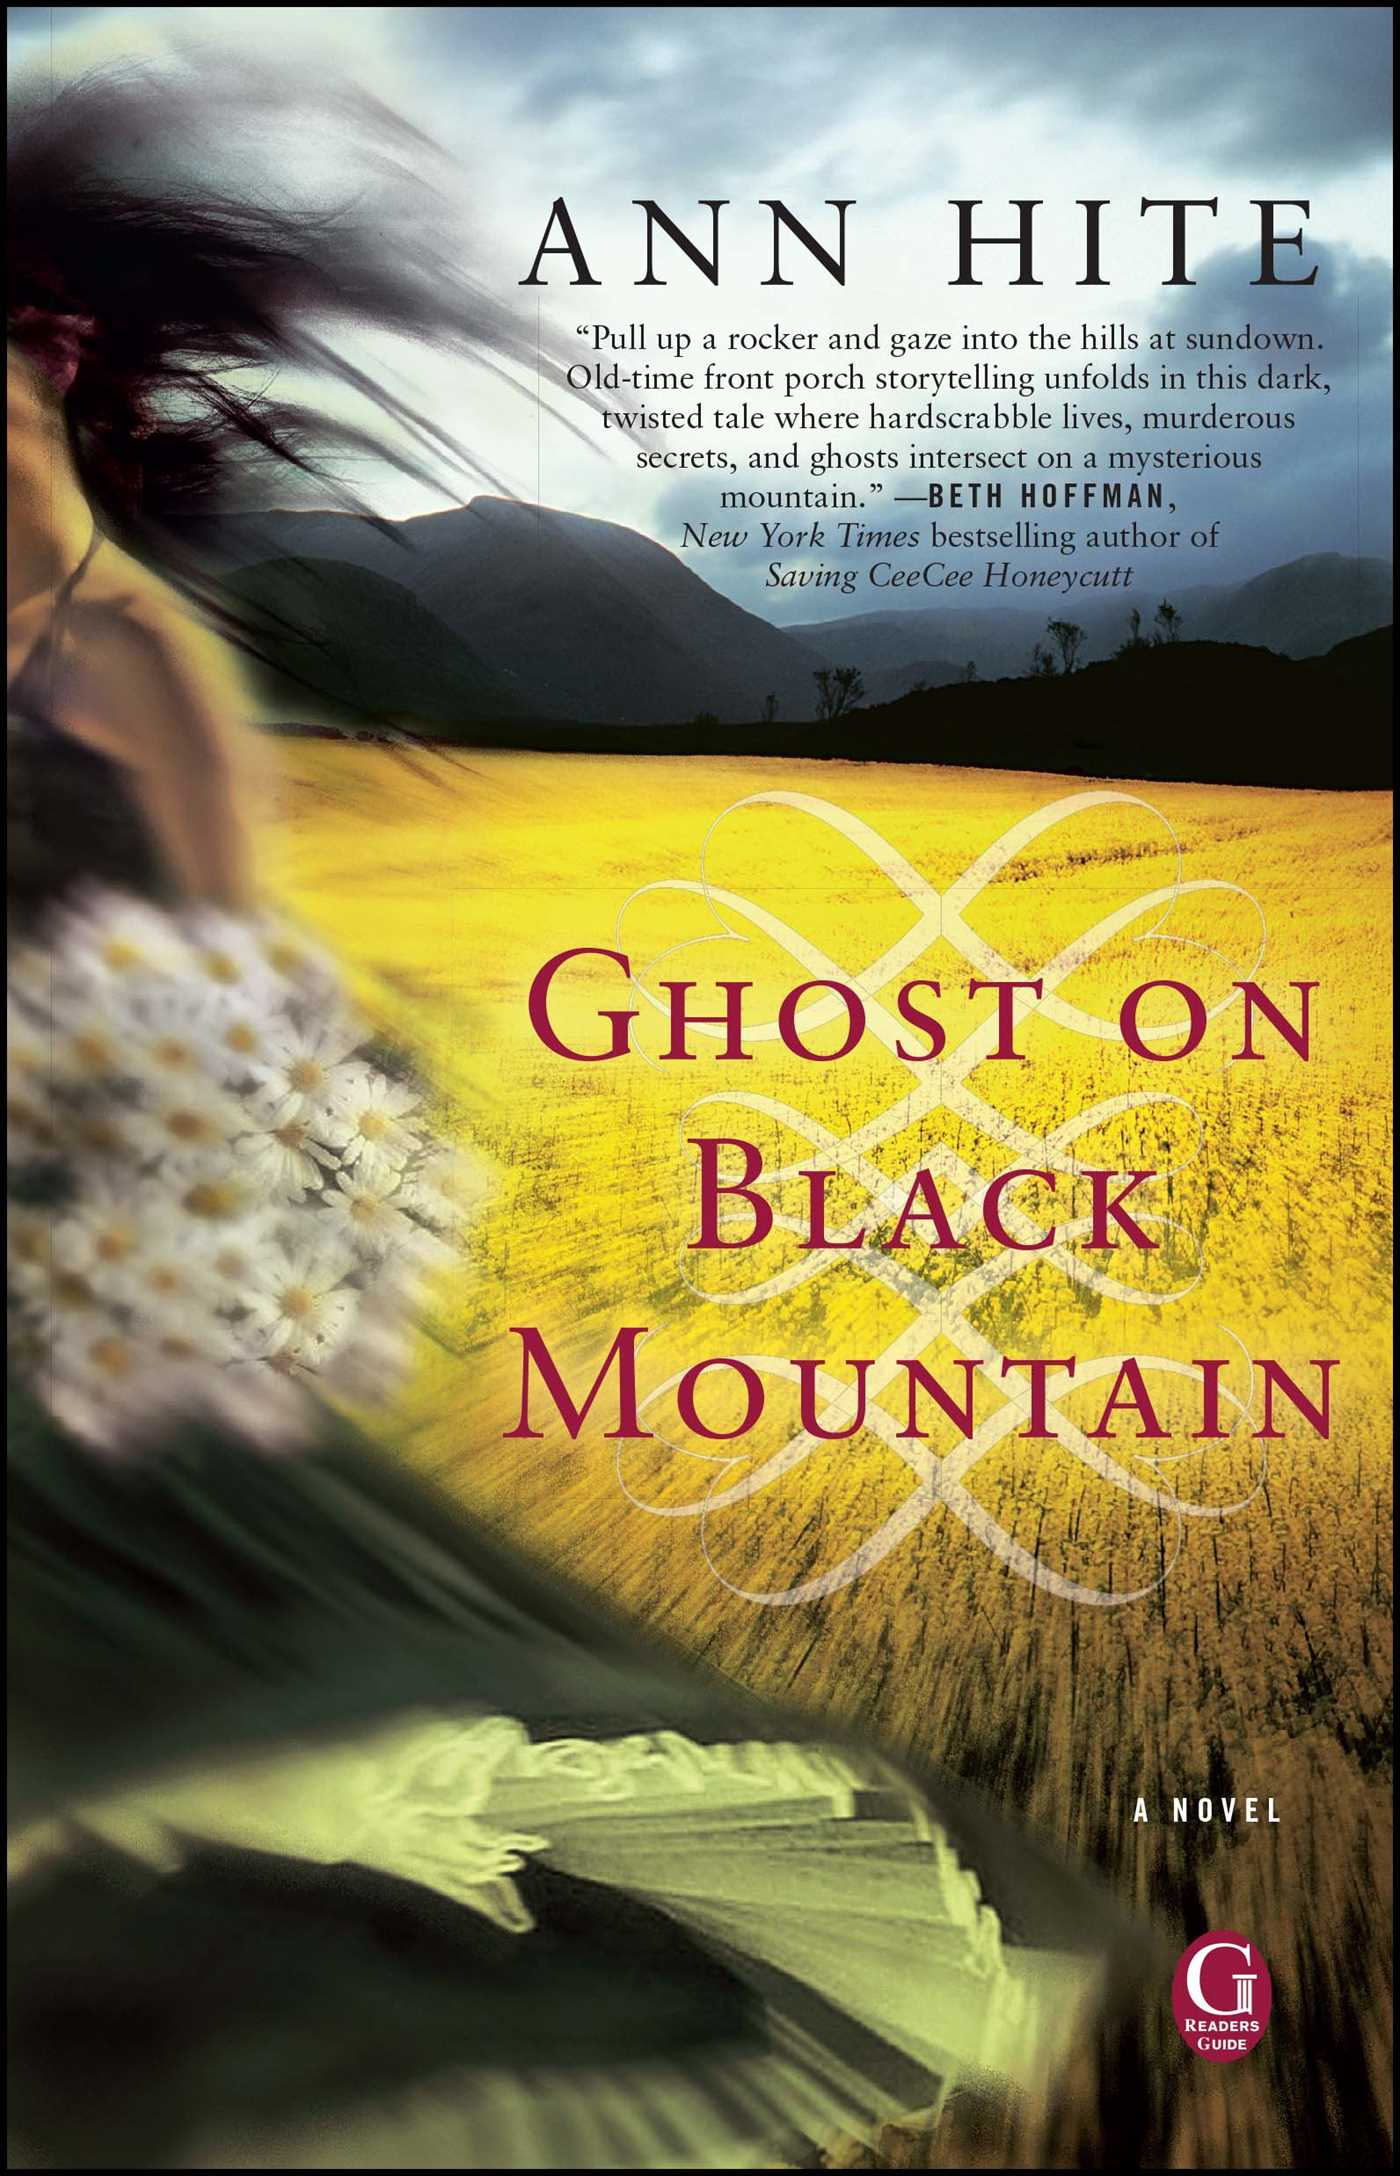 Ghost on black mountain 9781451606430 hr